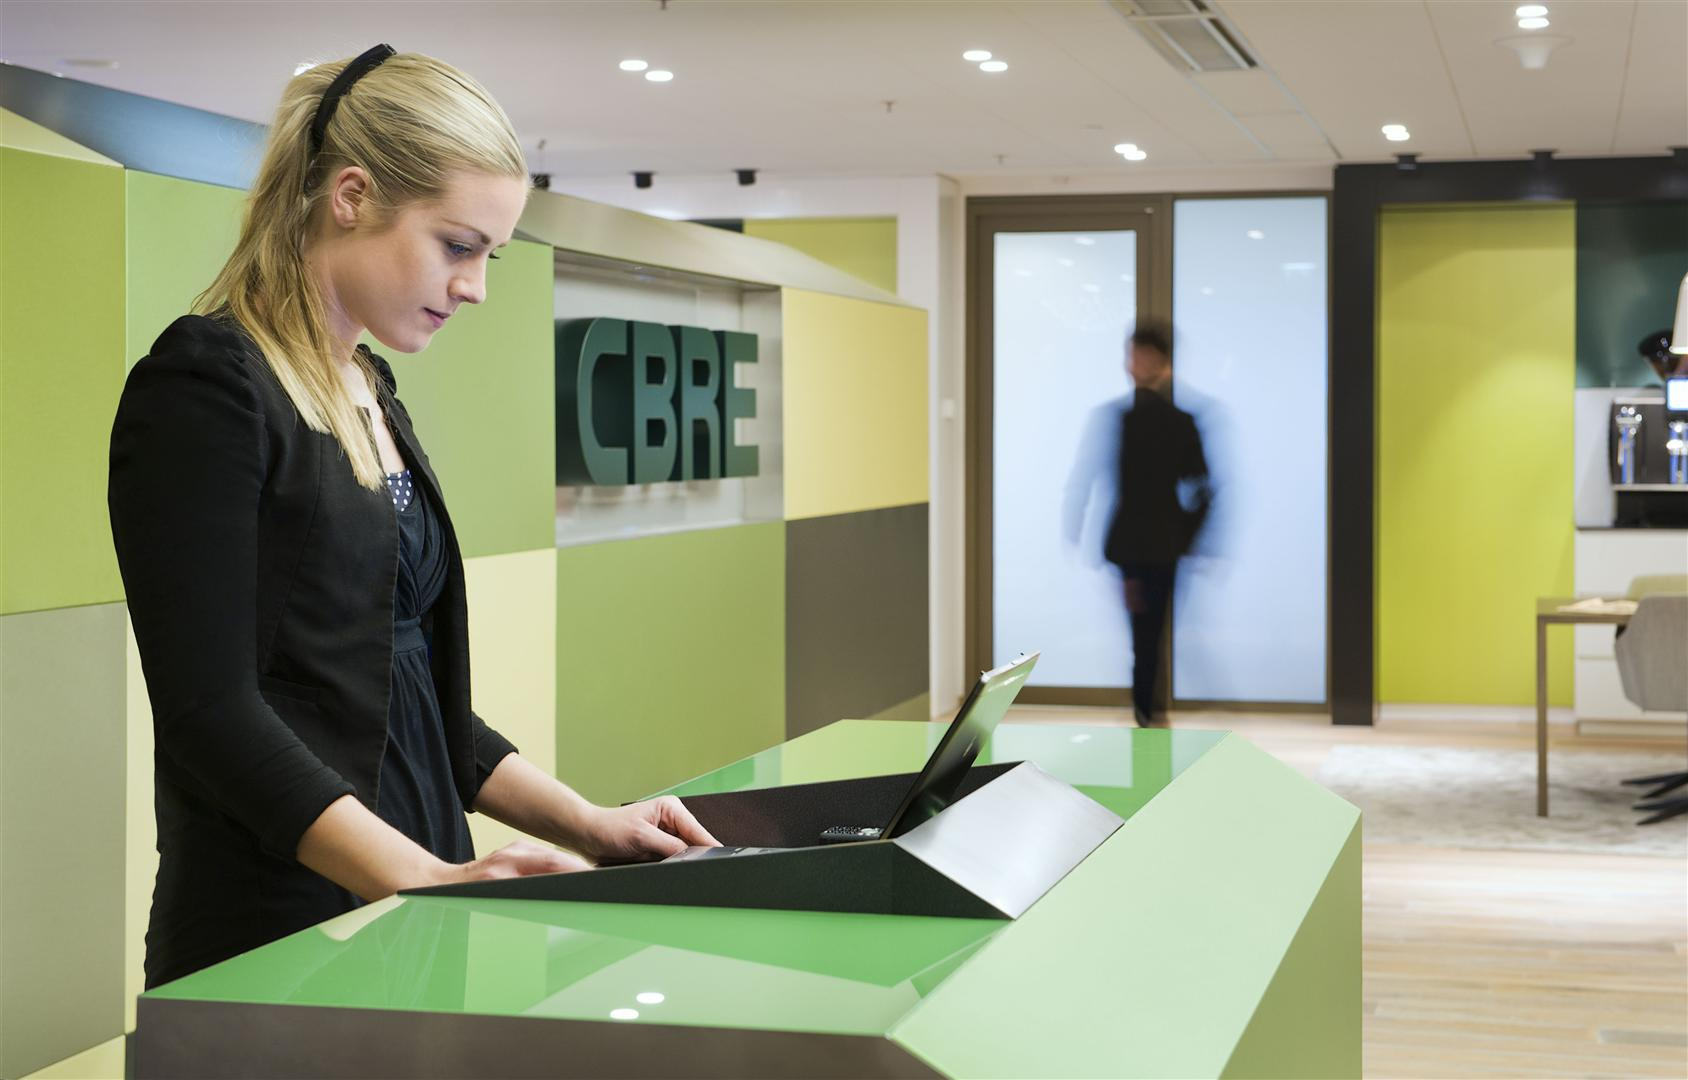 CBRE - Case Study - CBRE HQ The Netherlands - Symphony Offices, Zuidas, Amsterdam - Interior 03